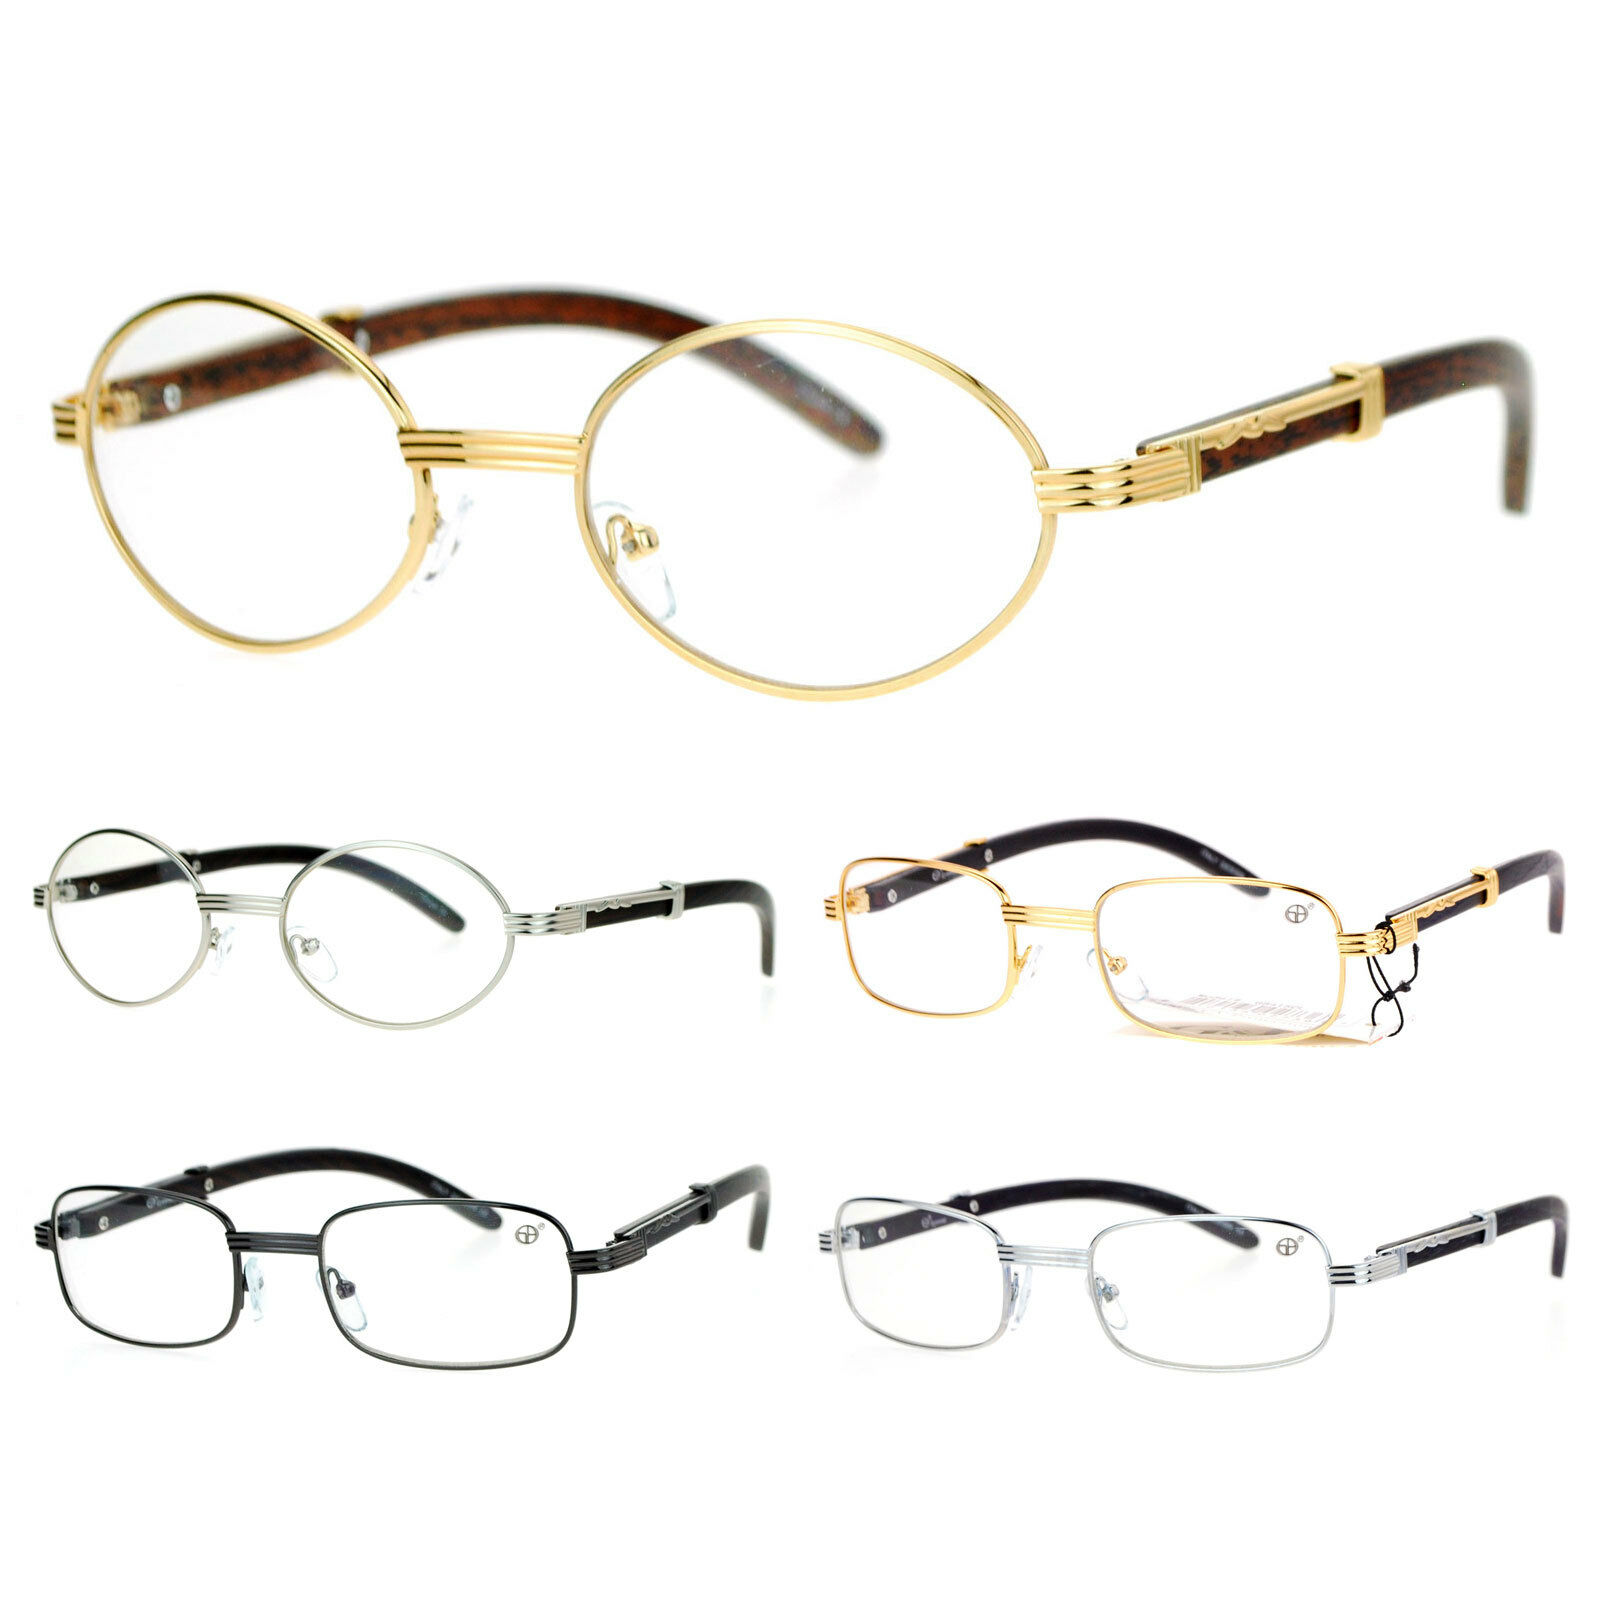 115ad7eaecd0 SA106 Retro Wood Buffs Vintage Style 90s Gangster Metal Frame Eye Glasses